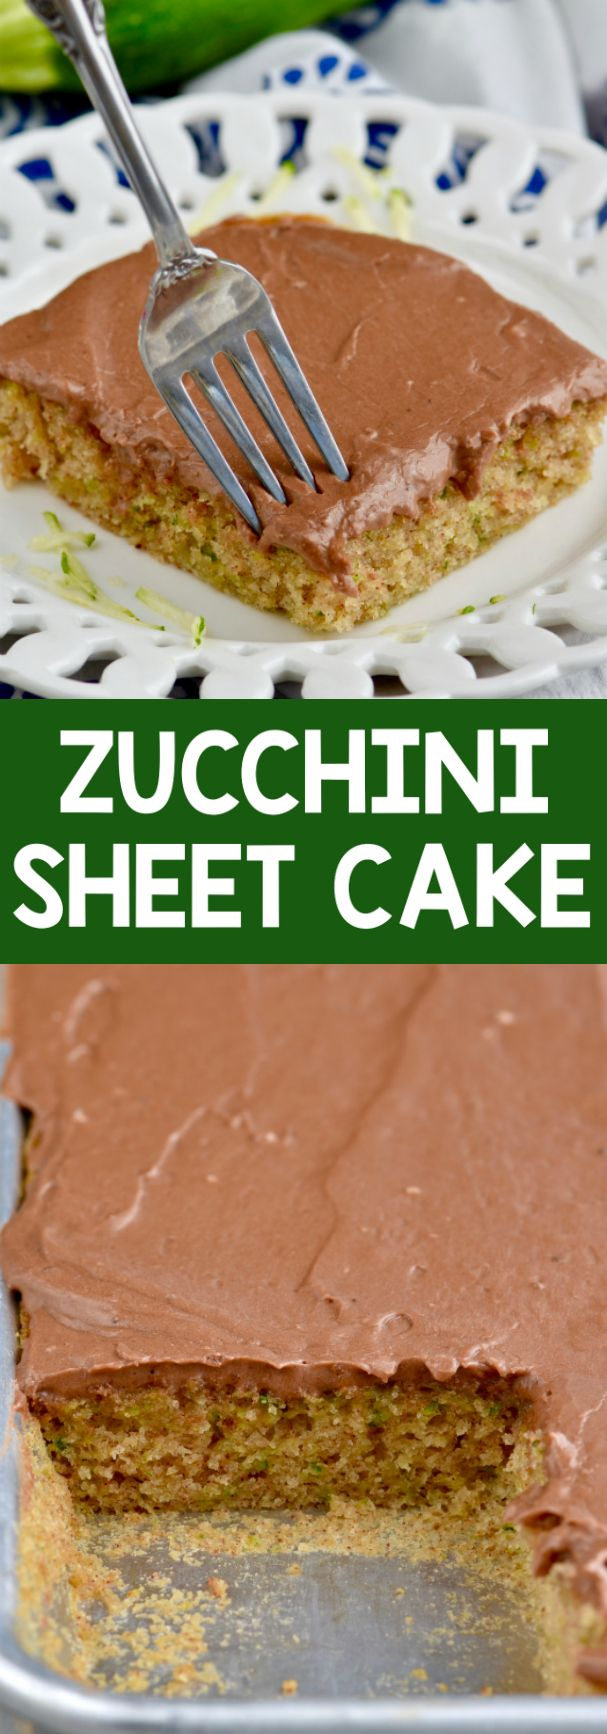 This Zucchini Sheet cake, smothered with chocolate frosting, is the perfect dessert! So delicious and feeds a crowd!